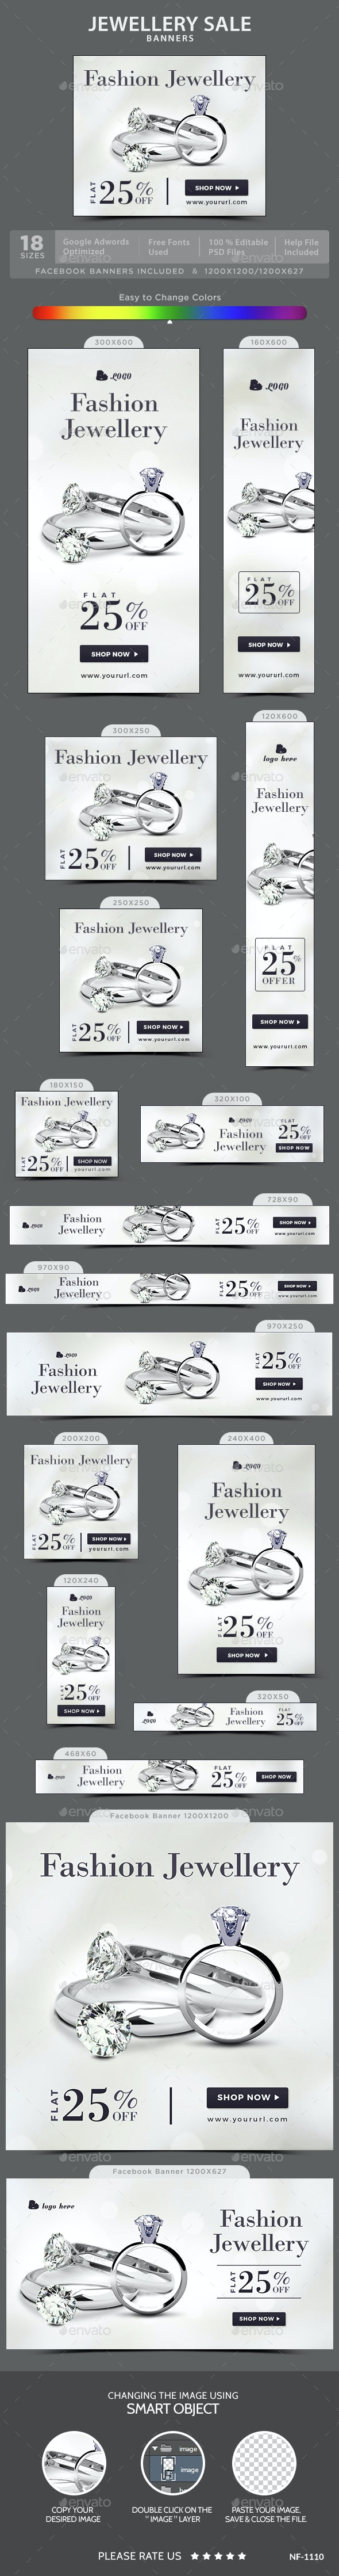 Jewellery Sale Banners - Banners & Ads Web Elements